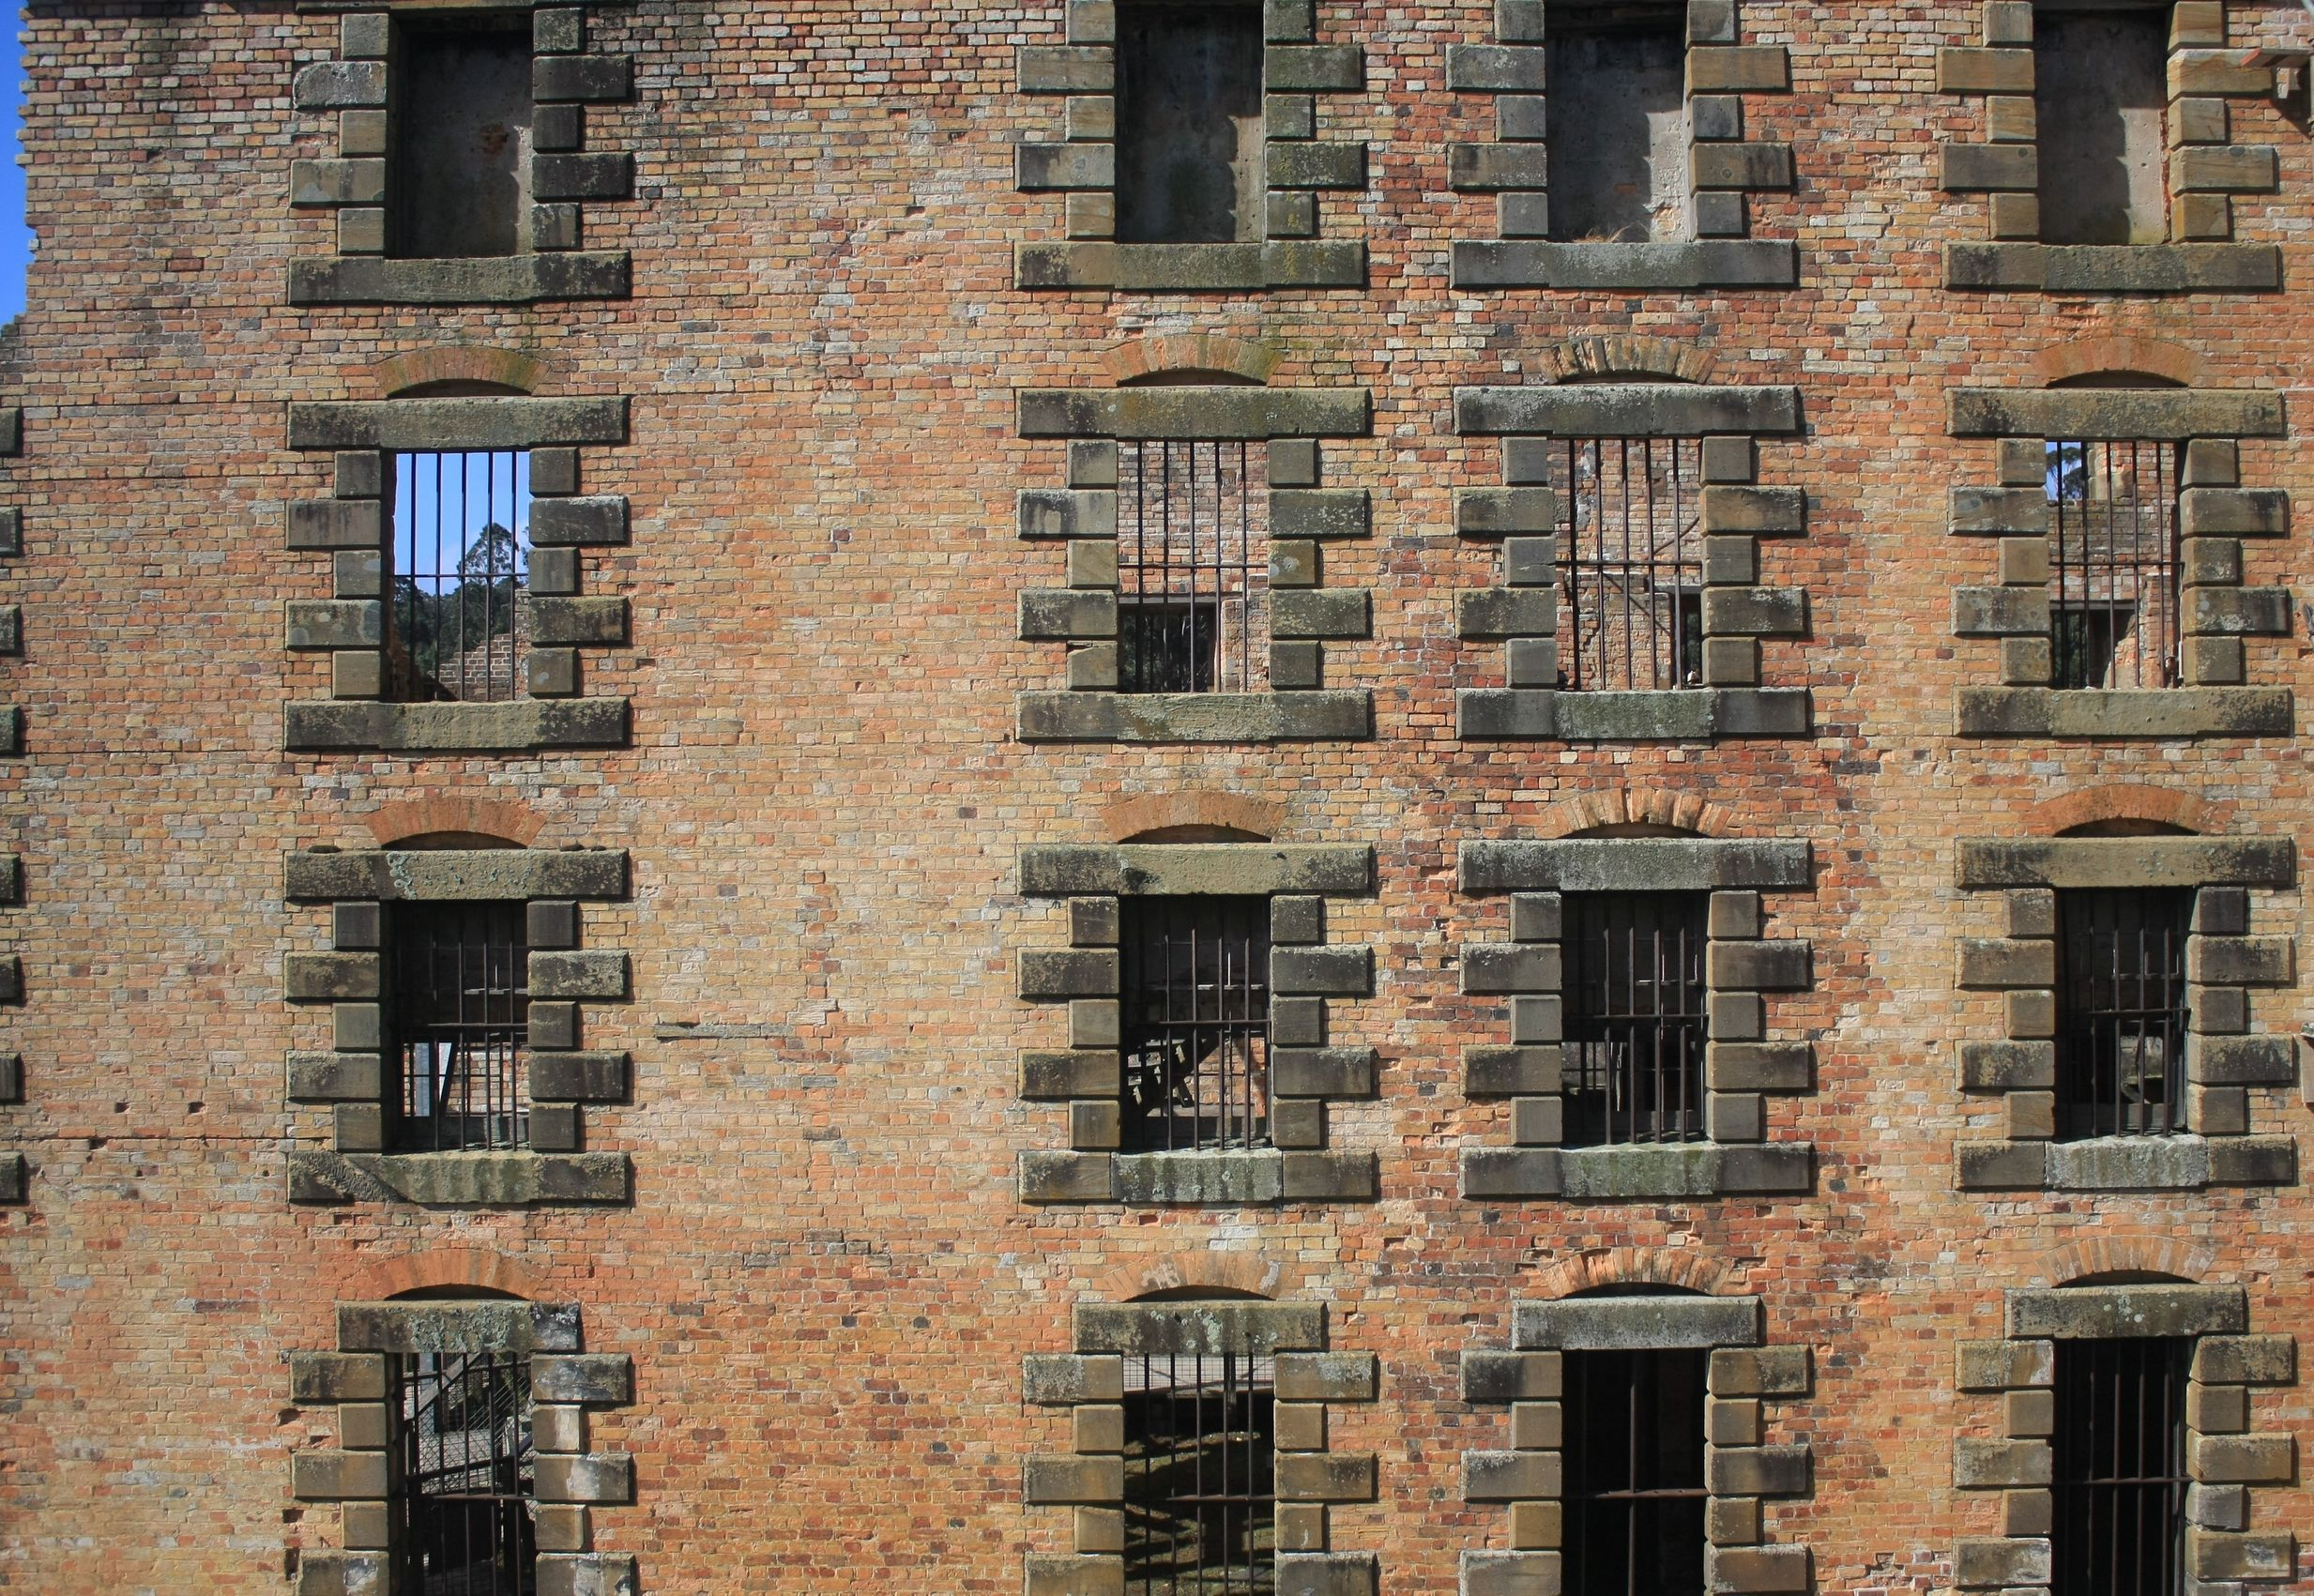 australia jail window 123rf